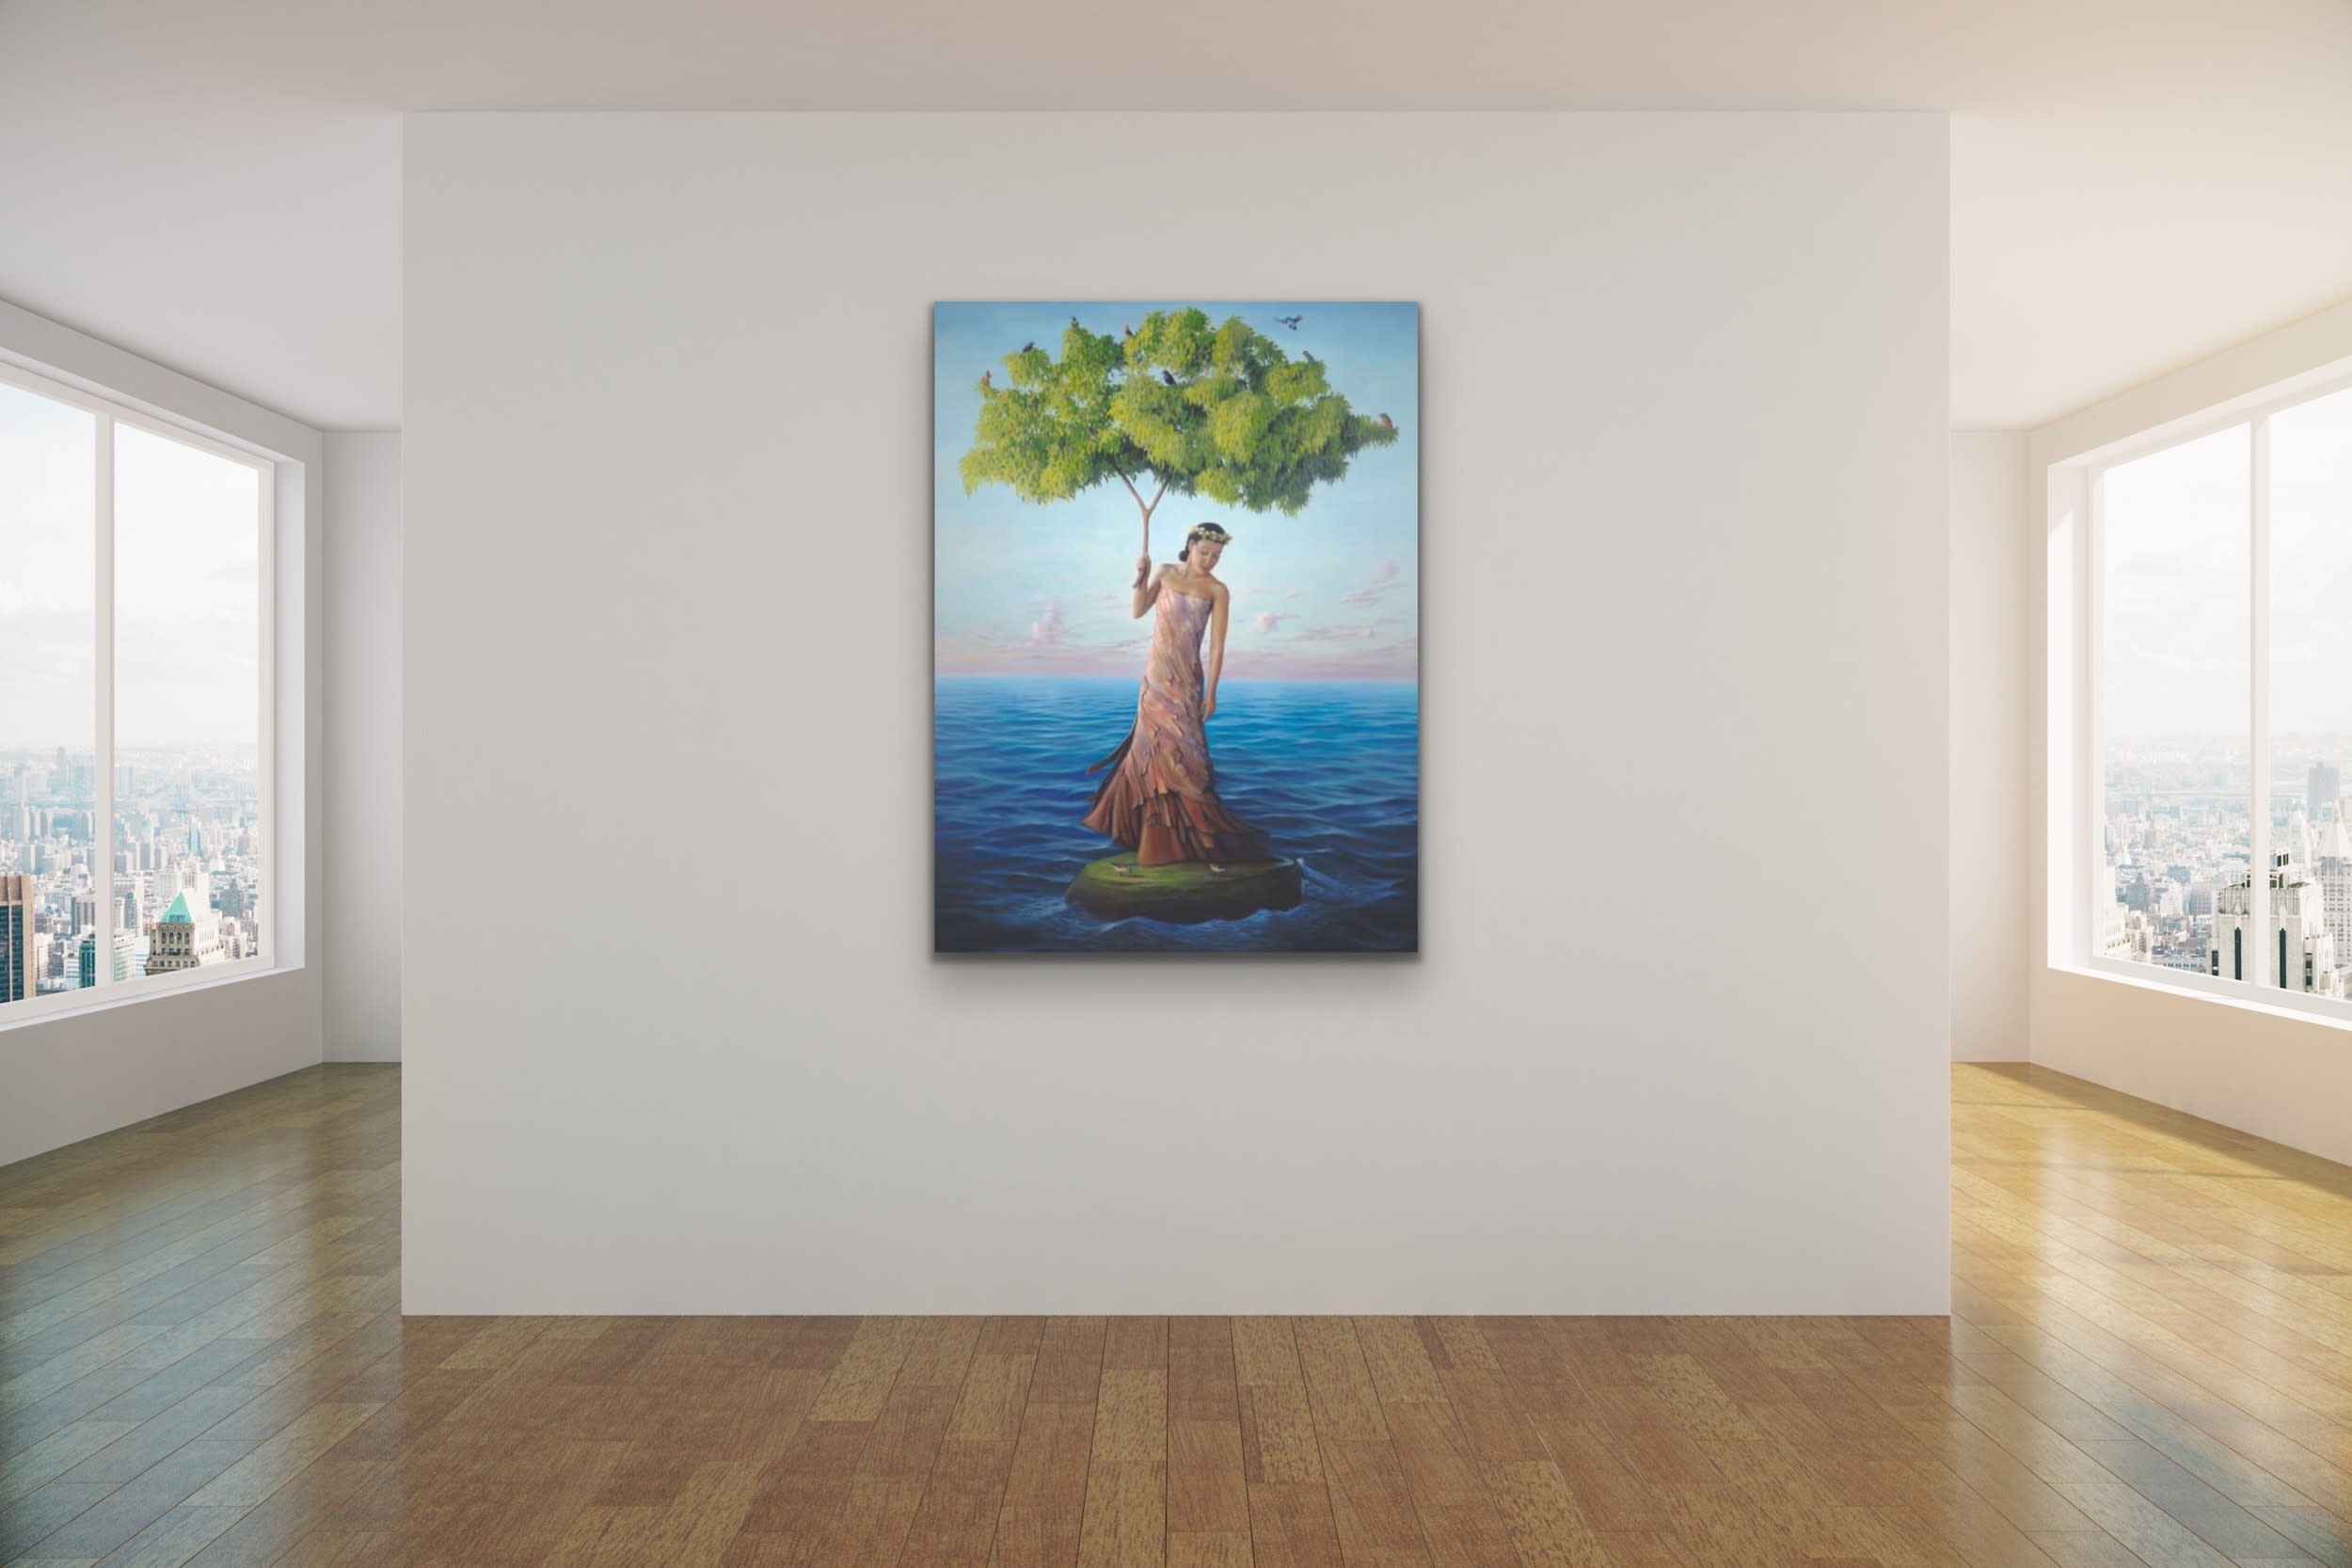 <div class='title'>           Paul Bond Magical Realism Poetry Serene Landscape Animals Nature Surreal Metaphorical Whimsical Fantasy Evo Art Maui Lahaina Front Street Art Gallery 41         </div>